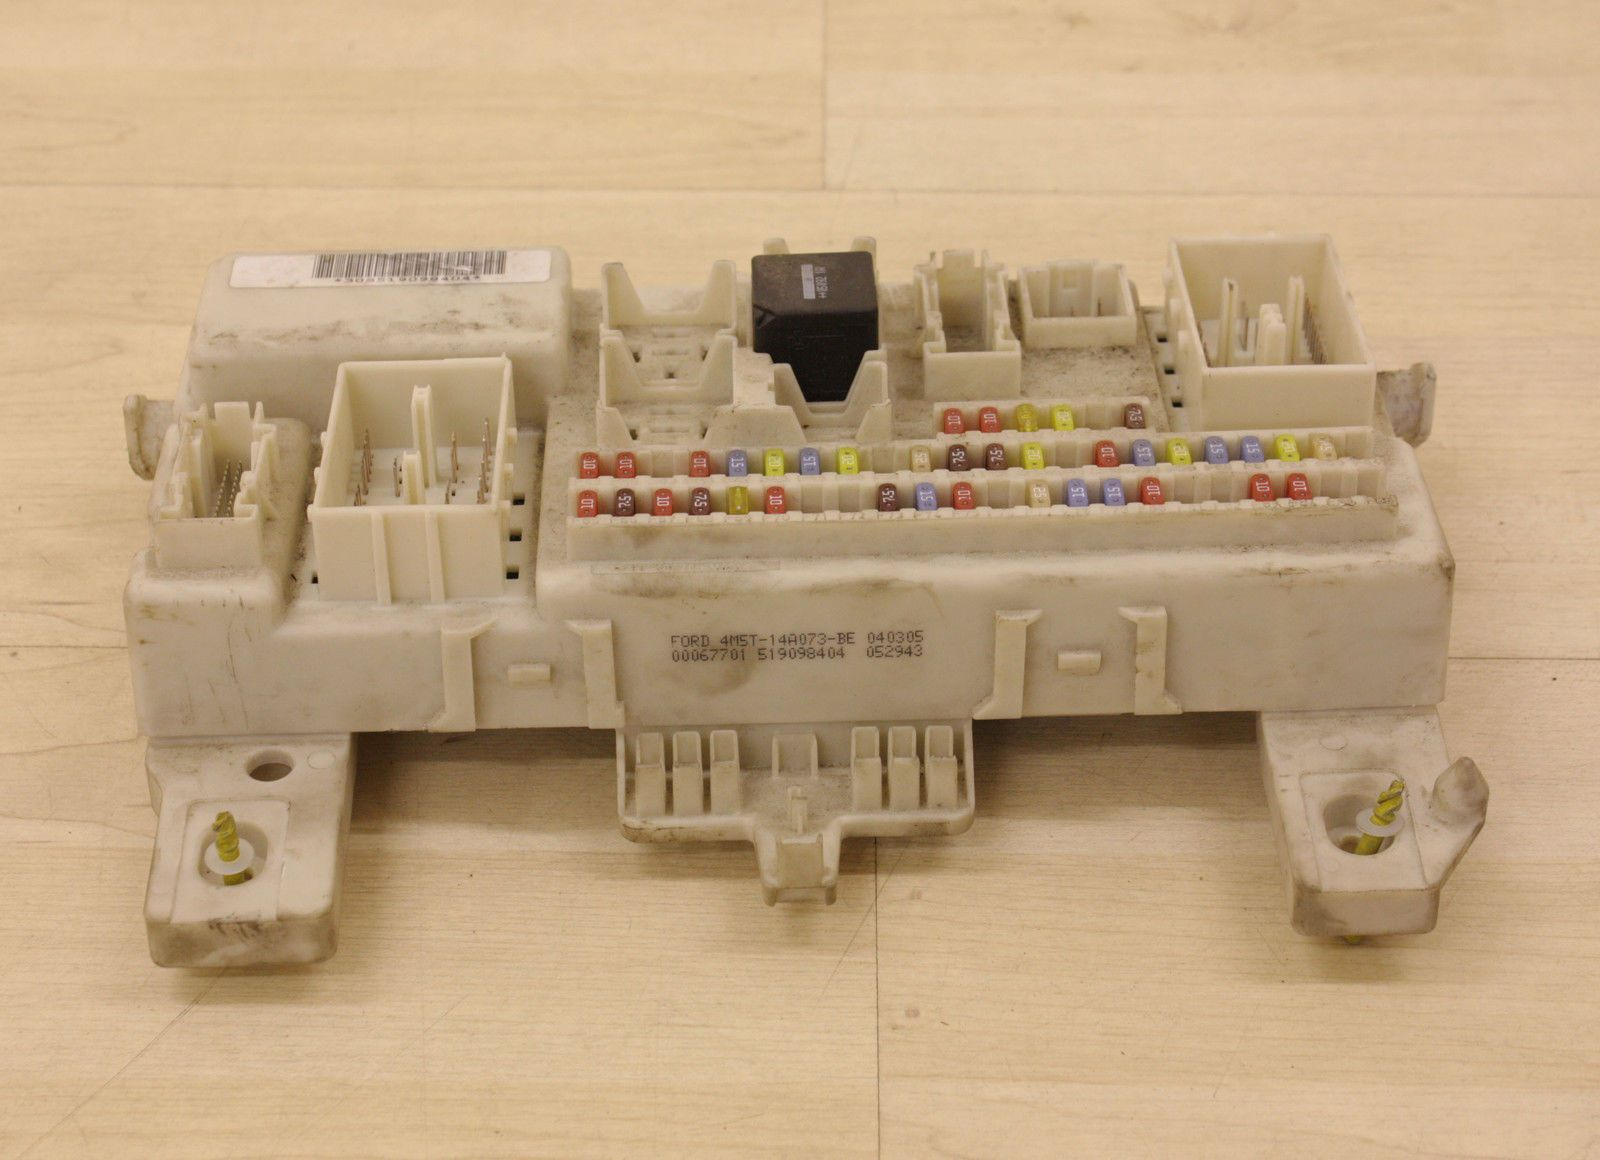 hight resolution of ford focus mk2 c max body control module fuse box bcm 4m5t 14a073 bf 2003 2007 2230 p jpg